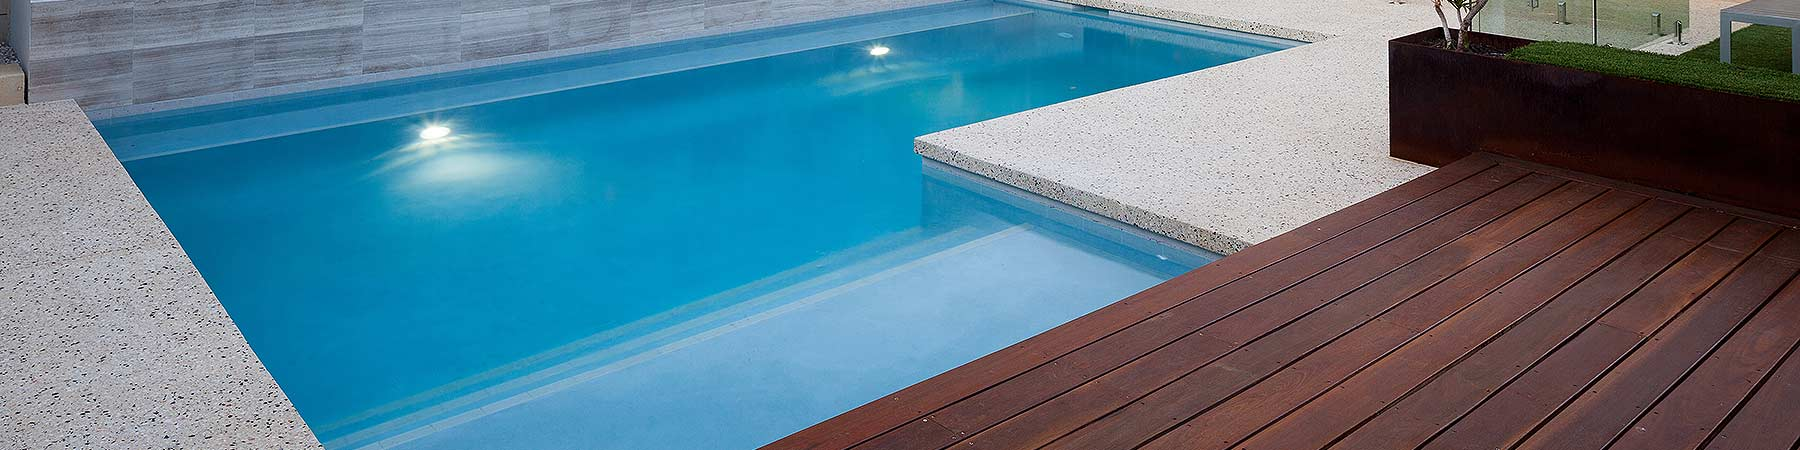 Swimming-Pool-Interior-Pool-Blue